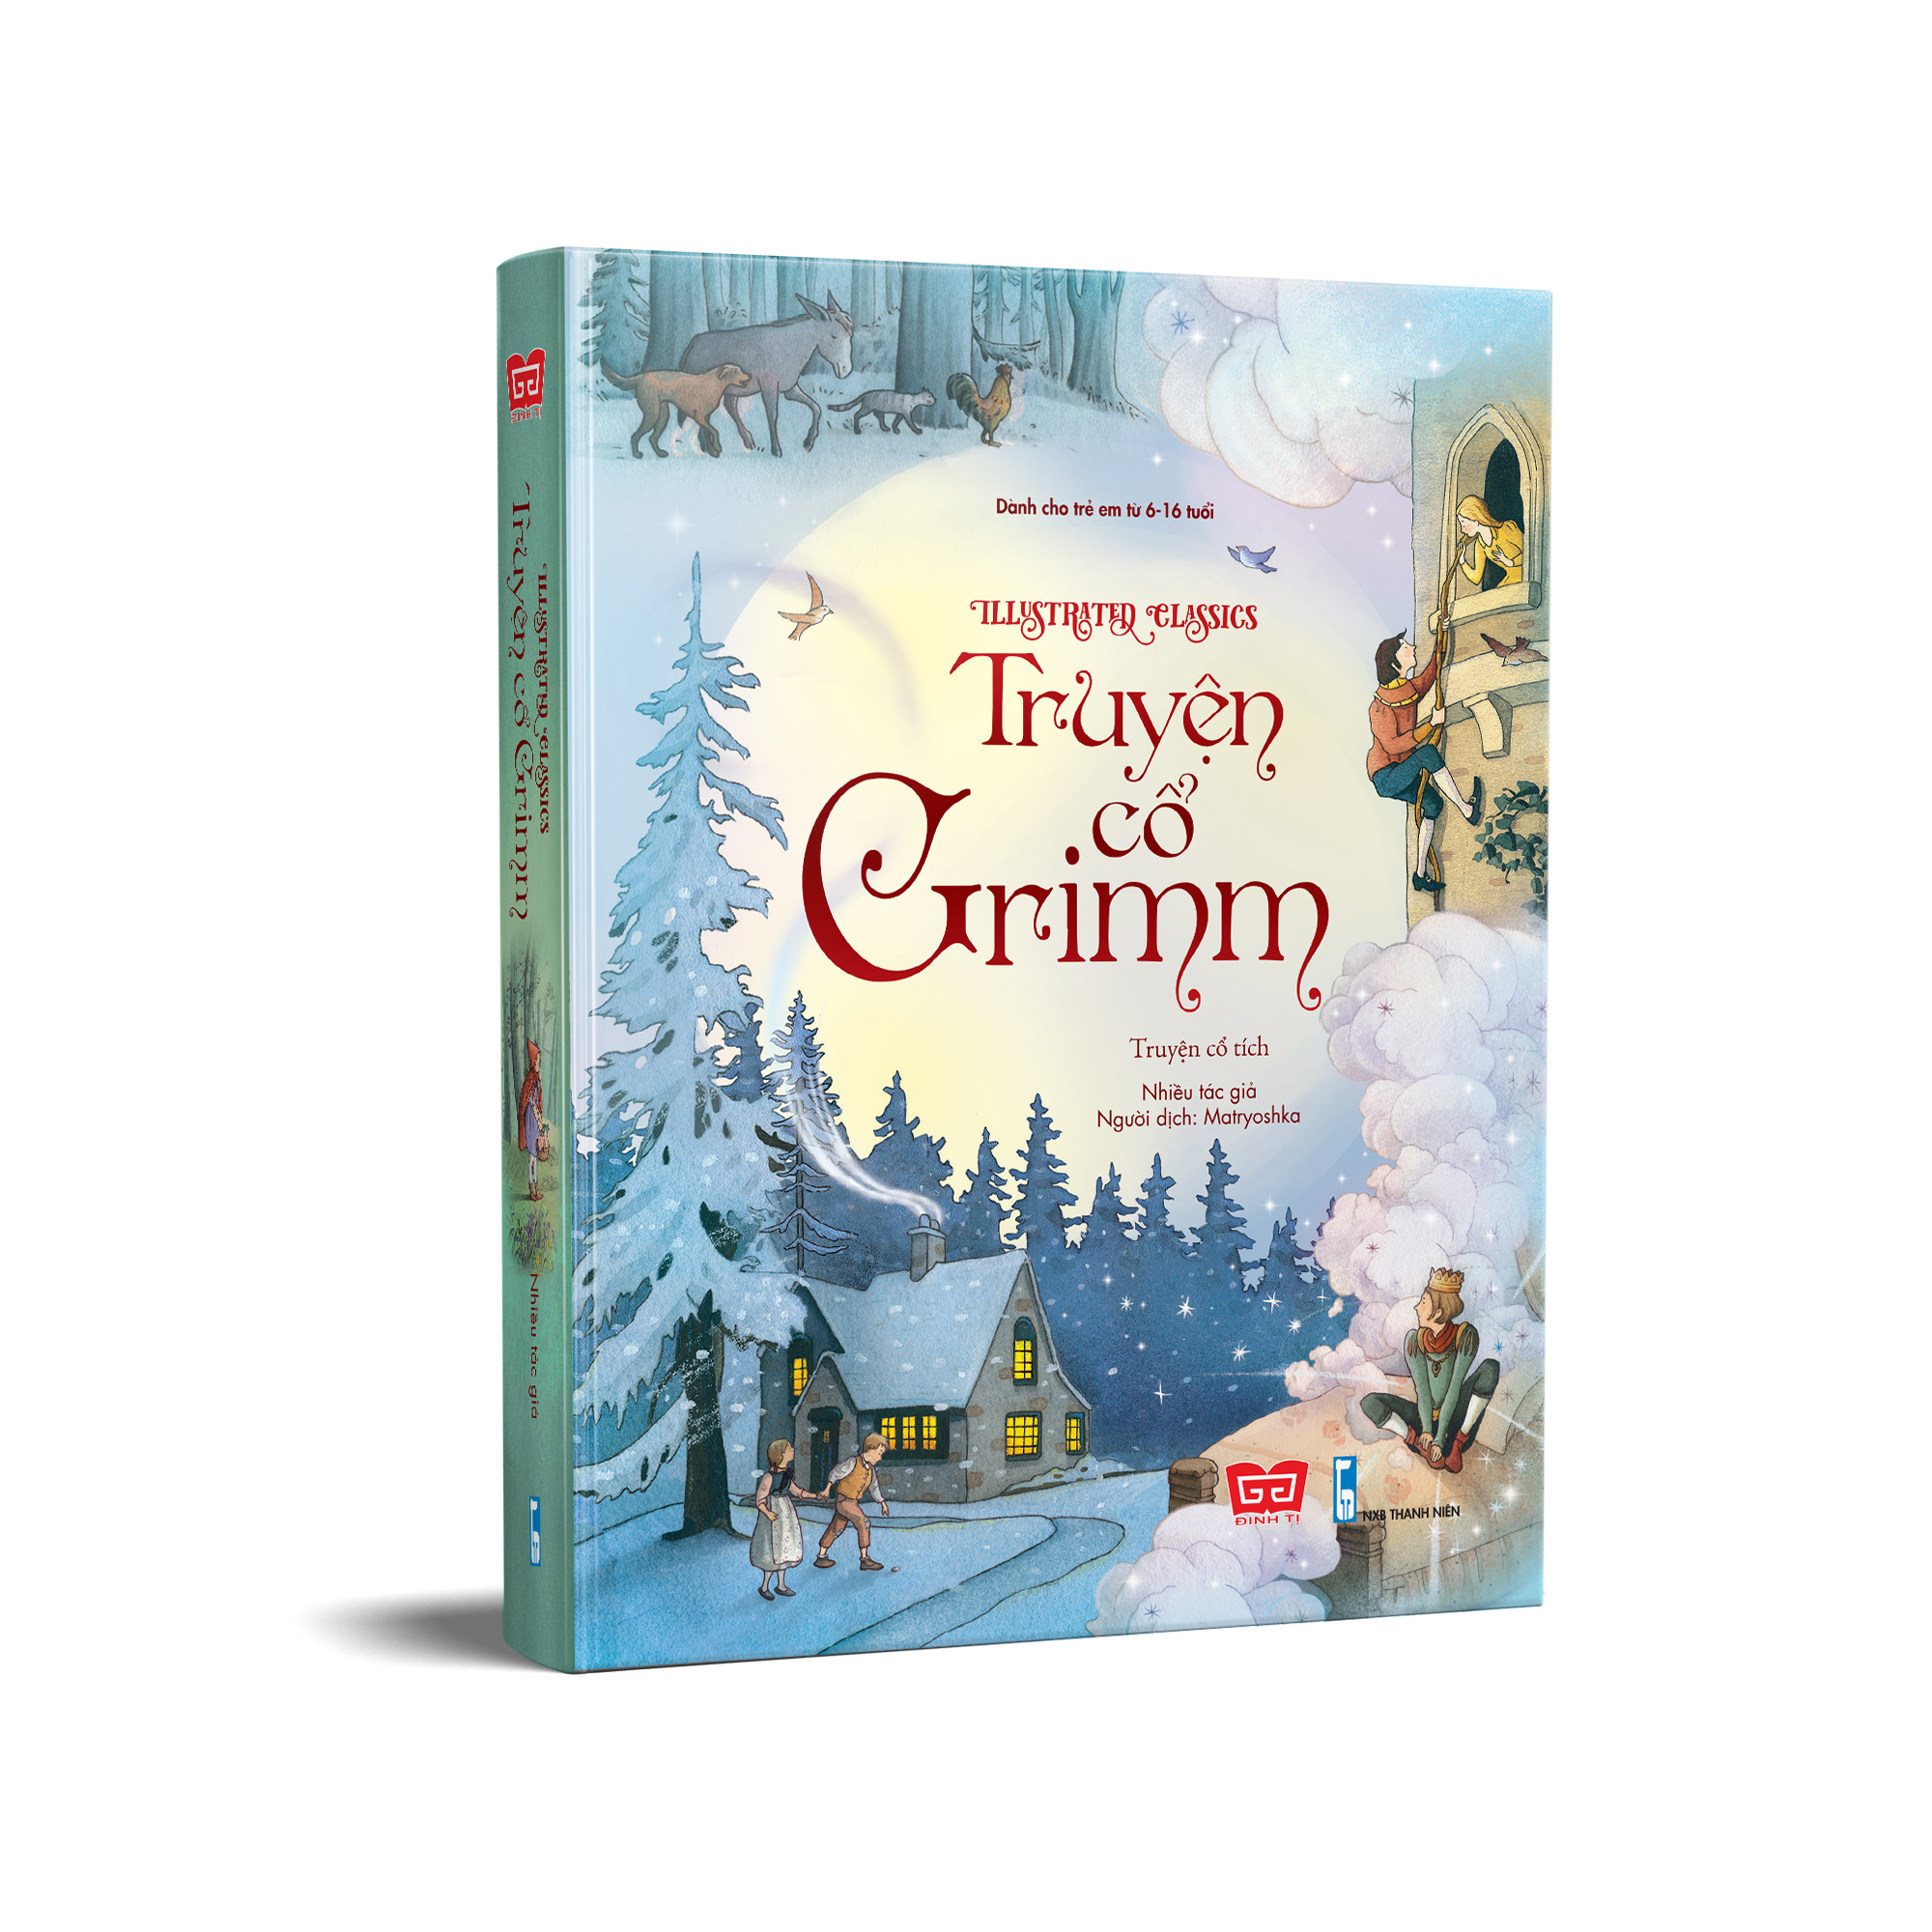 Illustrated Classics - Truyện cổ Grimm